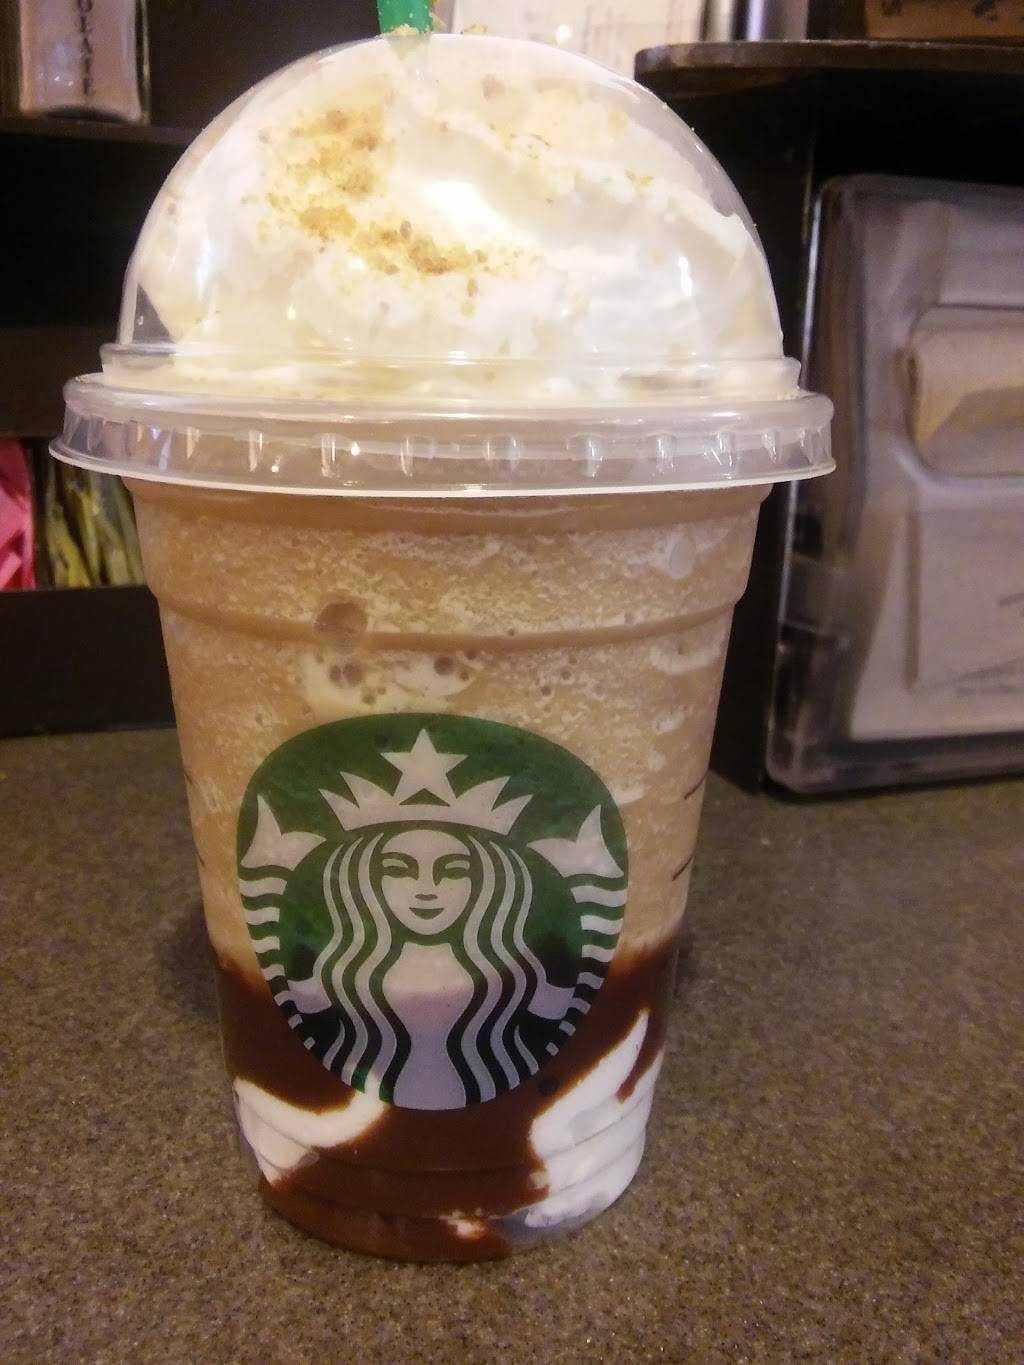 Starbucks - cafe  | Photo 1 of 3 | Address: 1000 Shoppes At Midway Dr, Knightdale, NC 27545, USA | Phone: (919) 388-6100